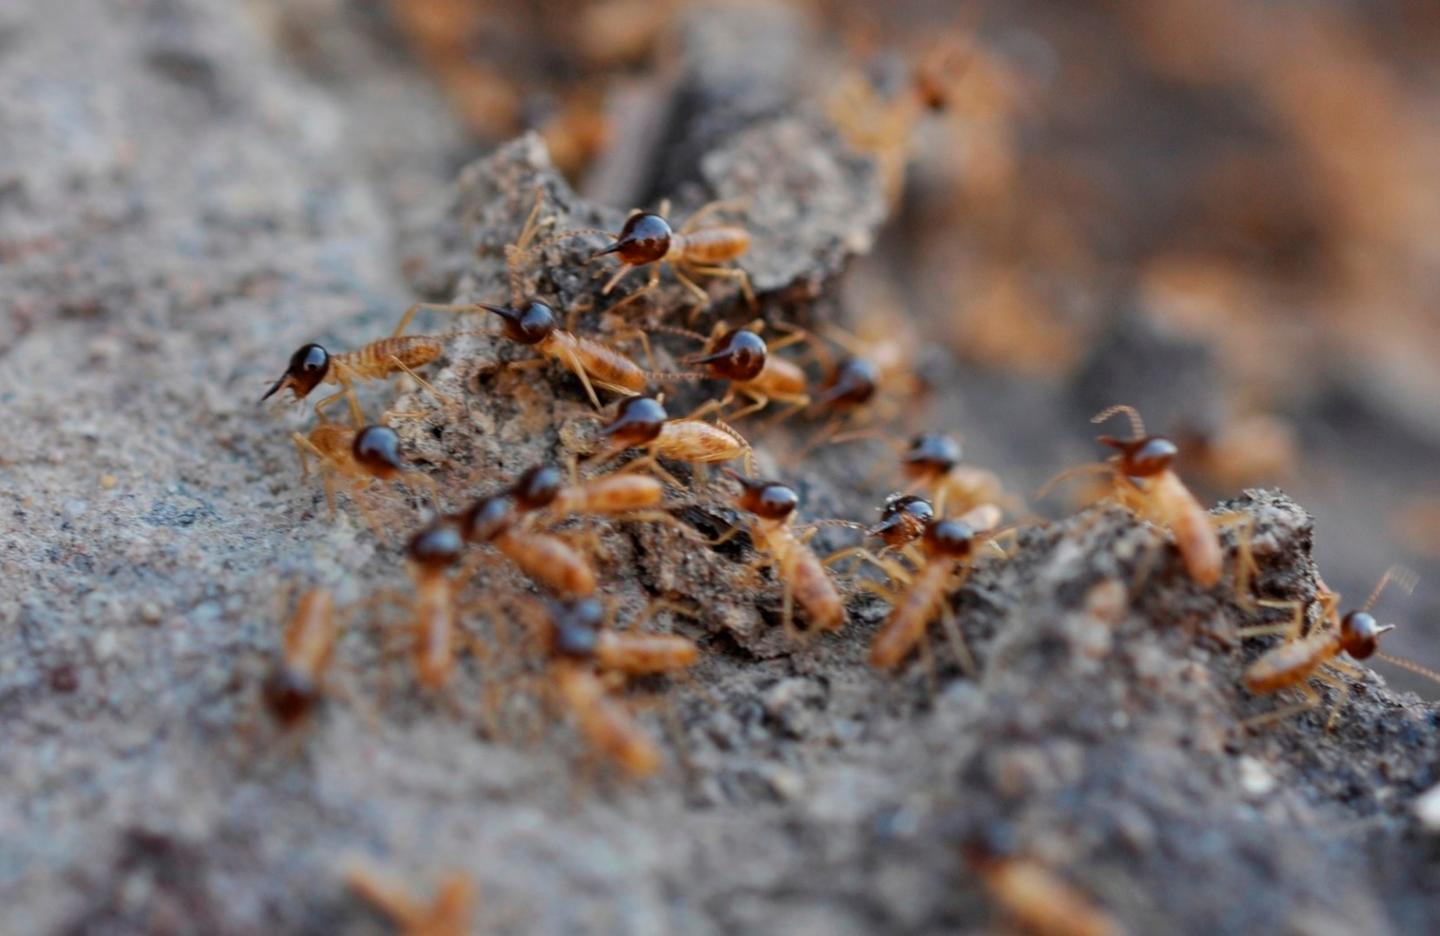 Like many great architects of the human world, these cathedral termites are the descendants of settlers that arrived from other continents and adapted to their landscape